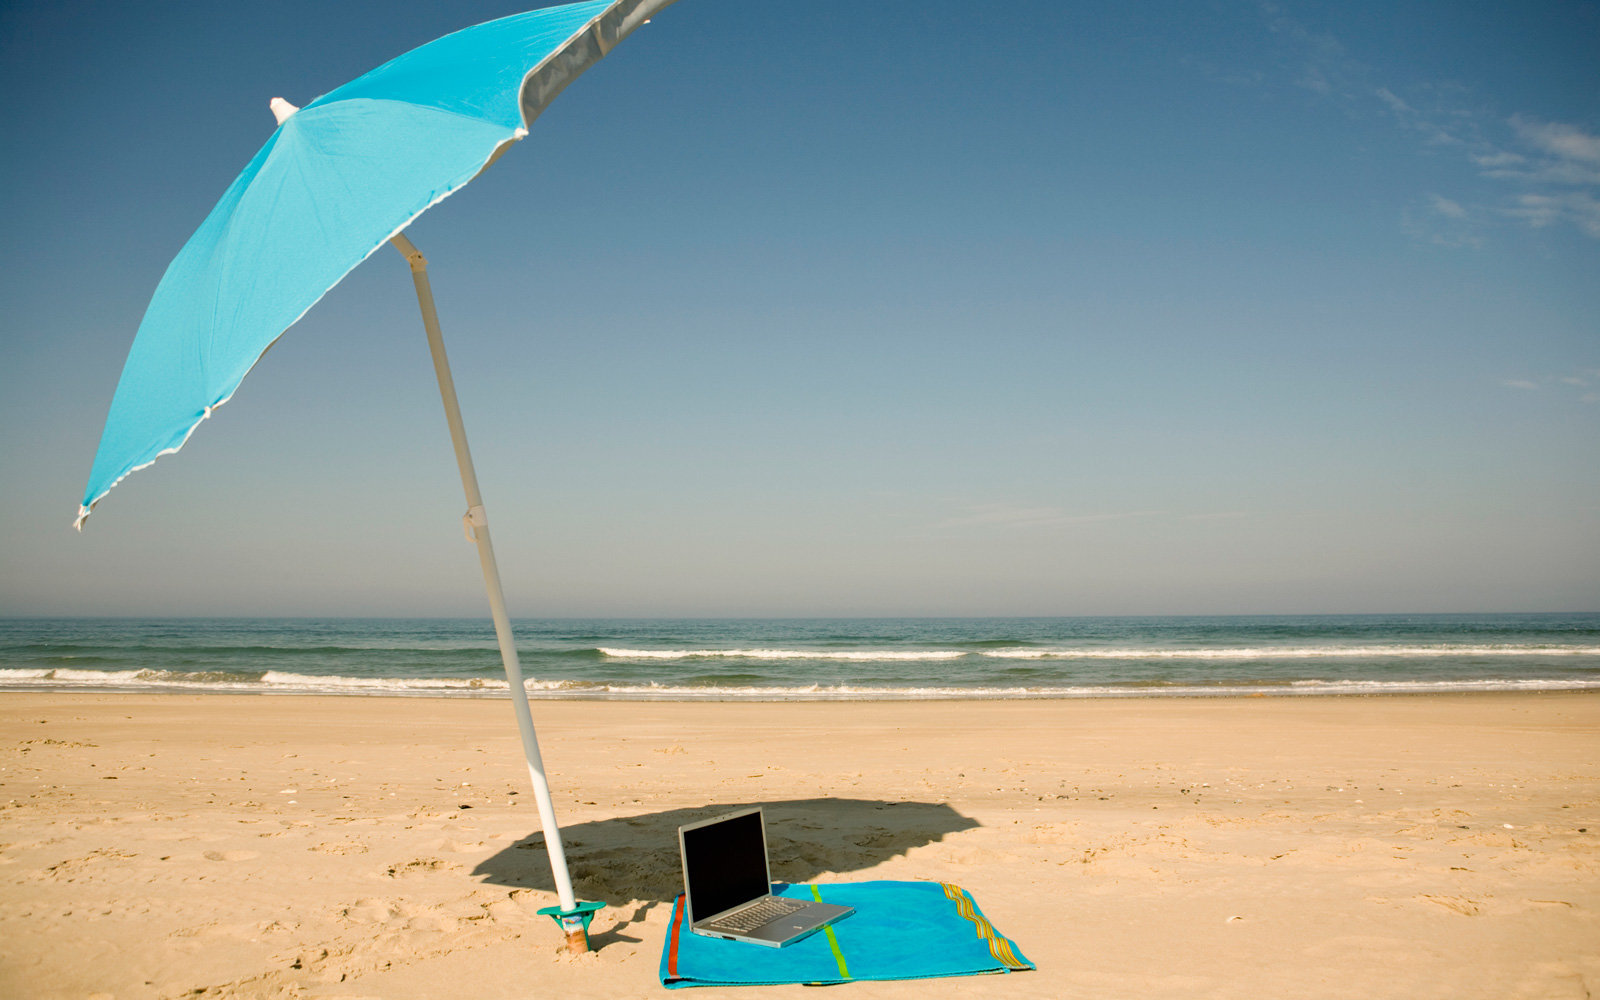 A laptop on the beach.